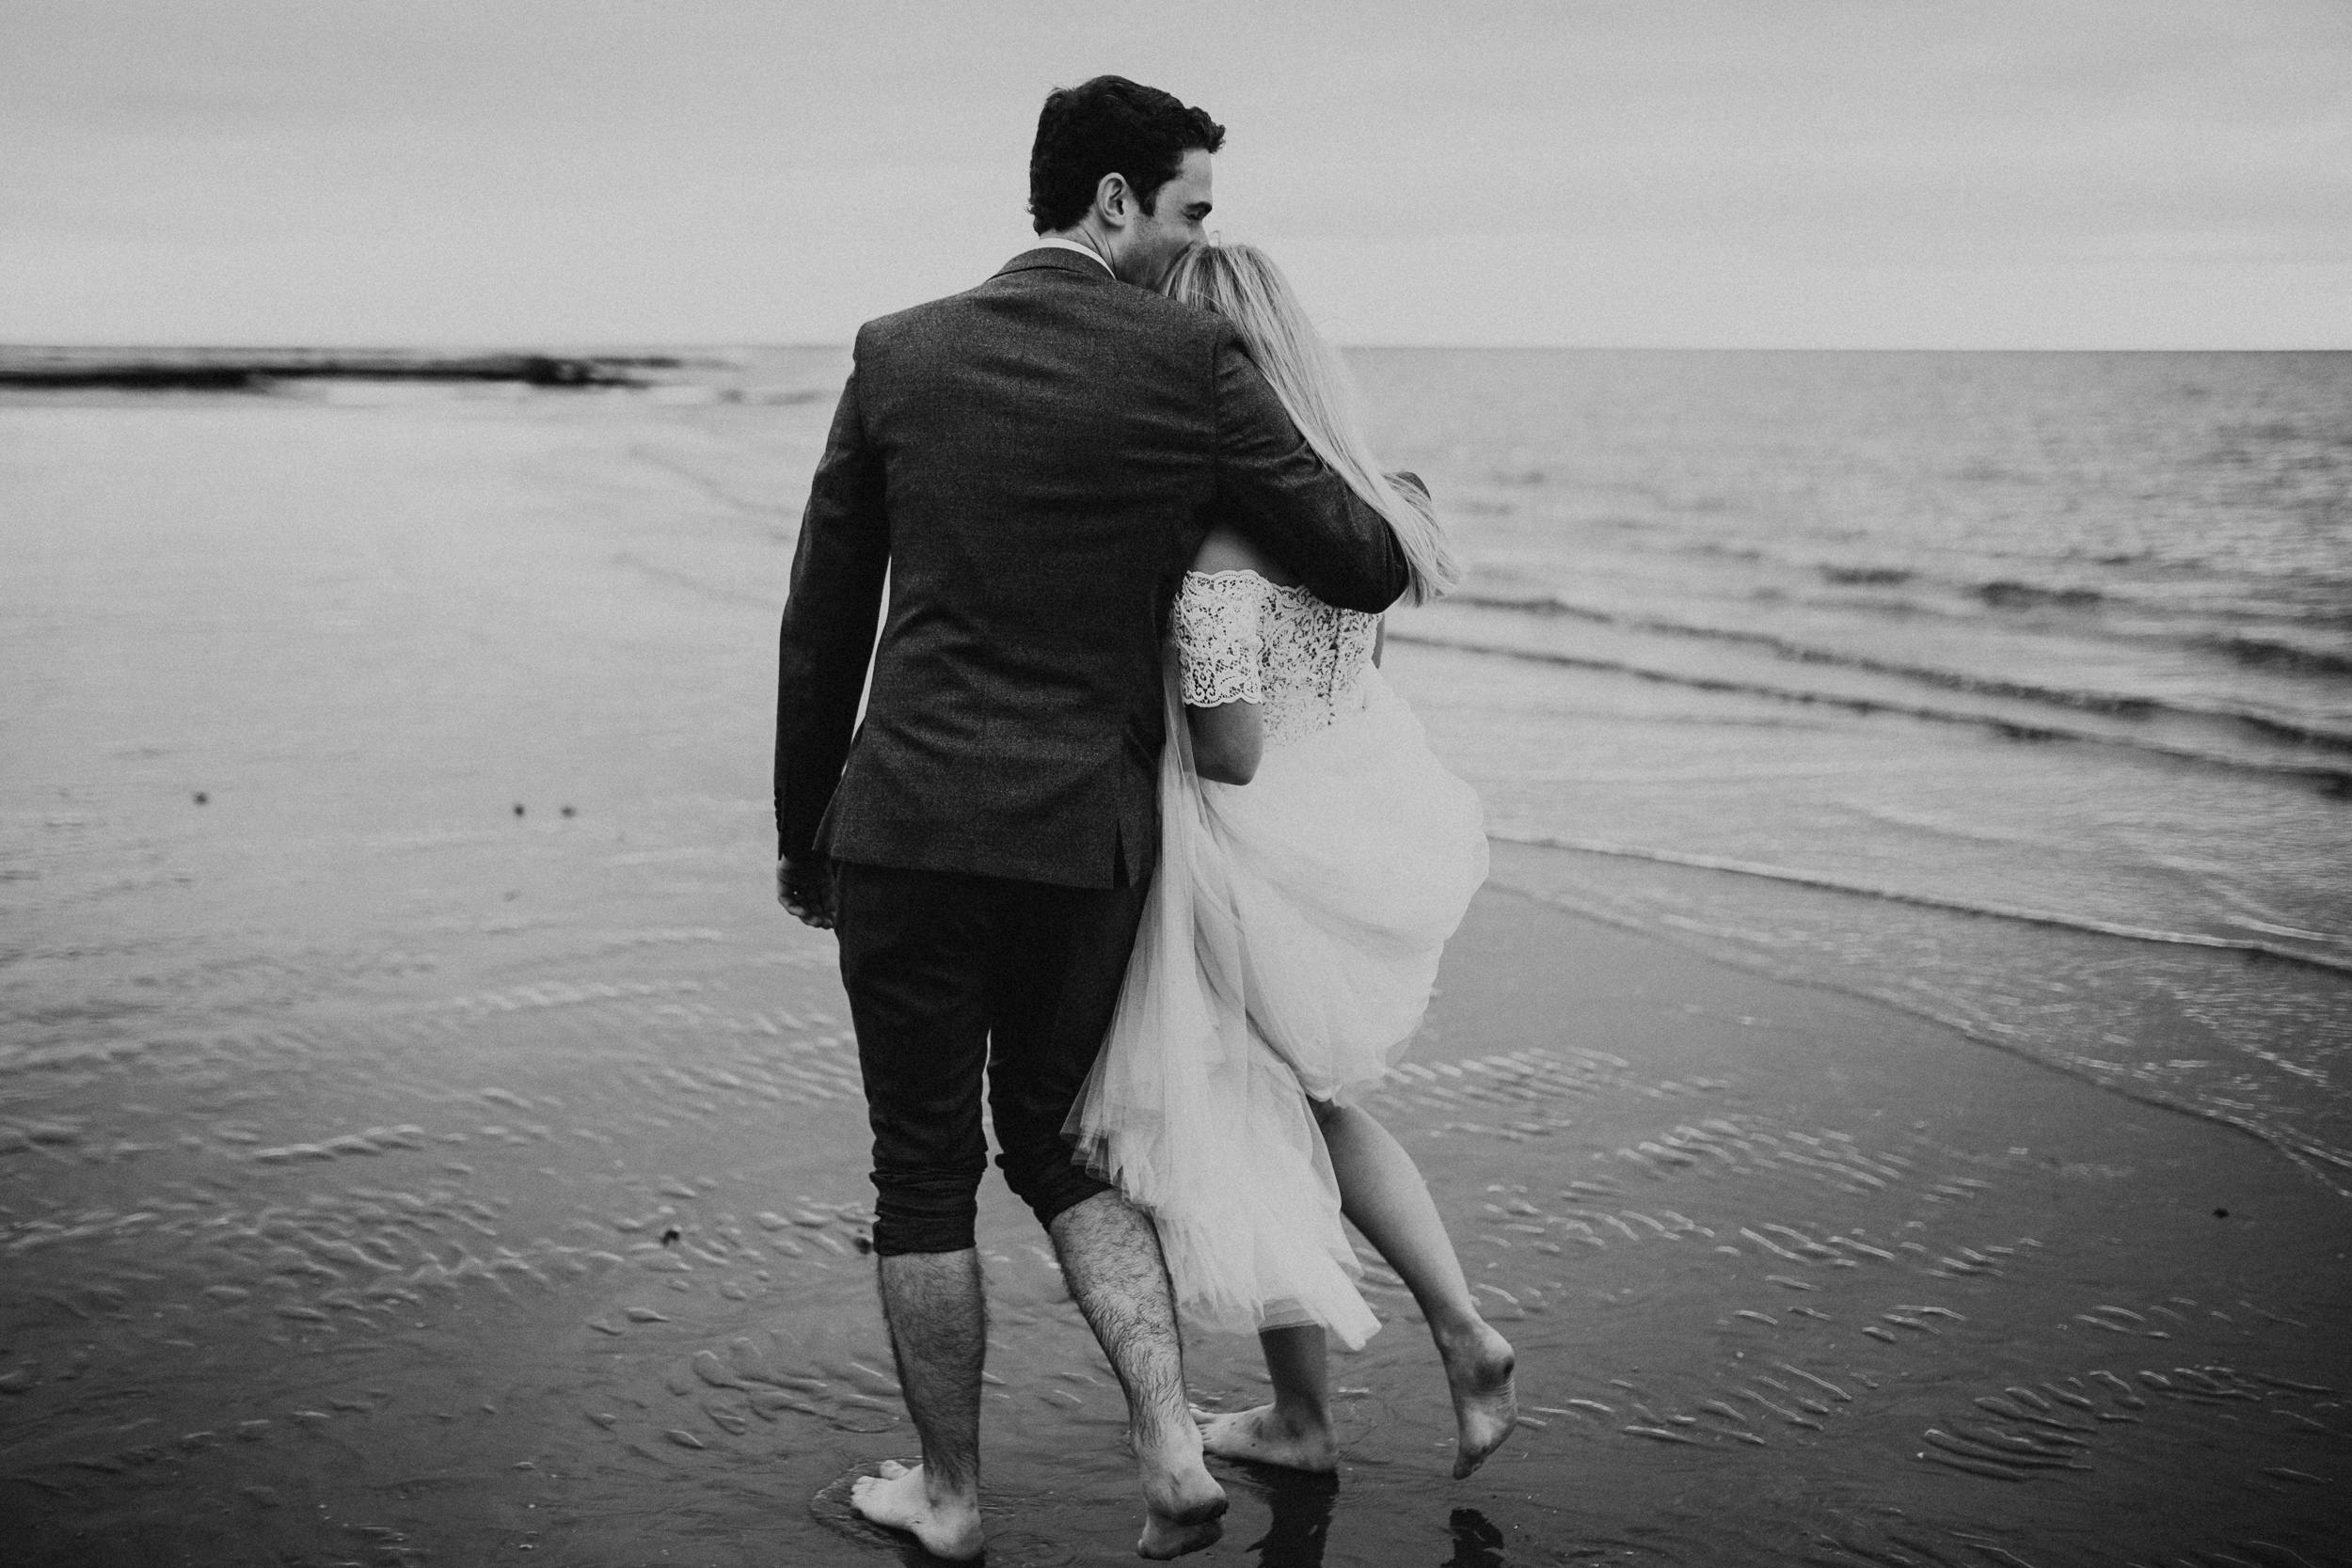 Claire-Clive-Wedding-Norfolk-Beach-Session-Love-Darina-Stoda-Photography-88.jpg